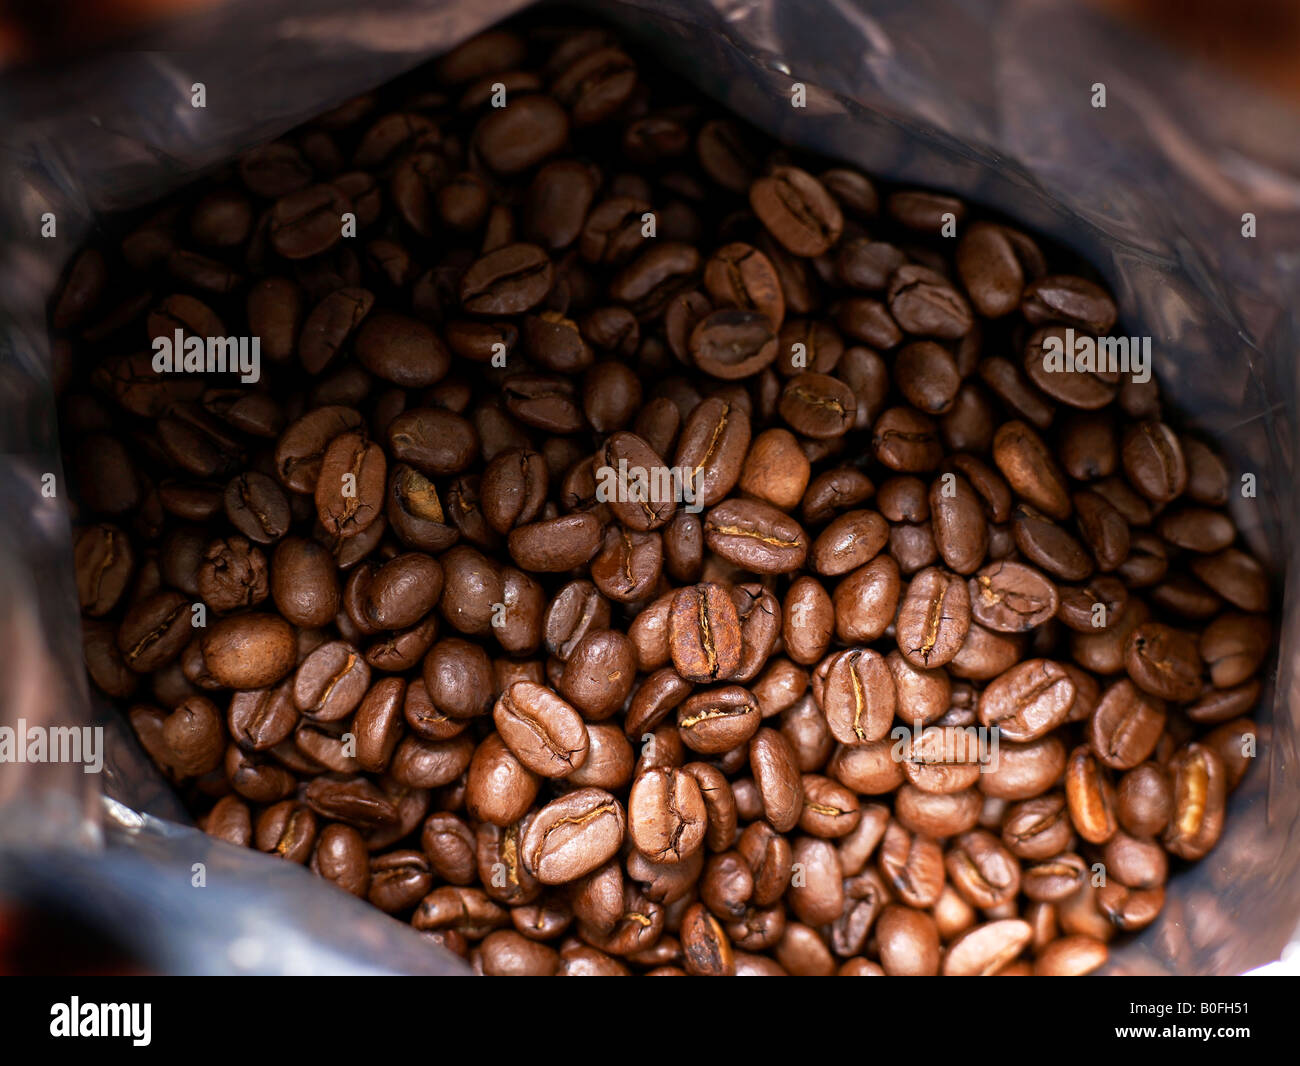 bag of coffee beens - Stock Image